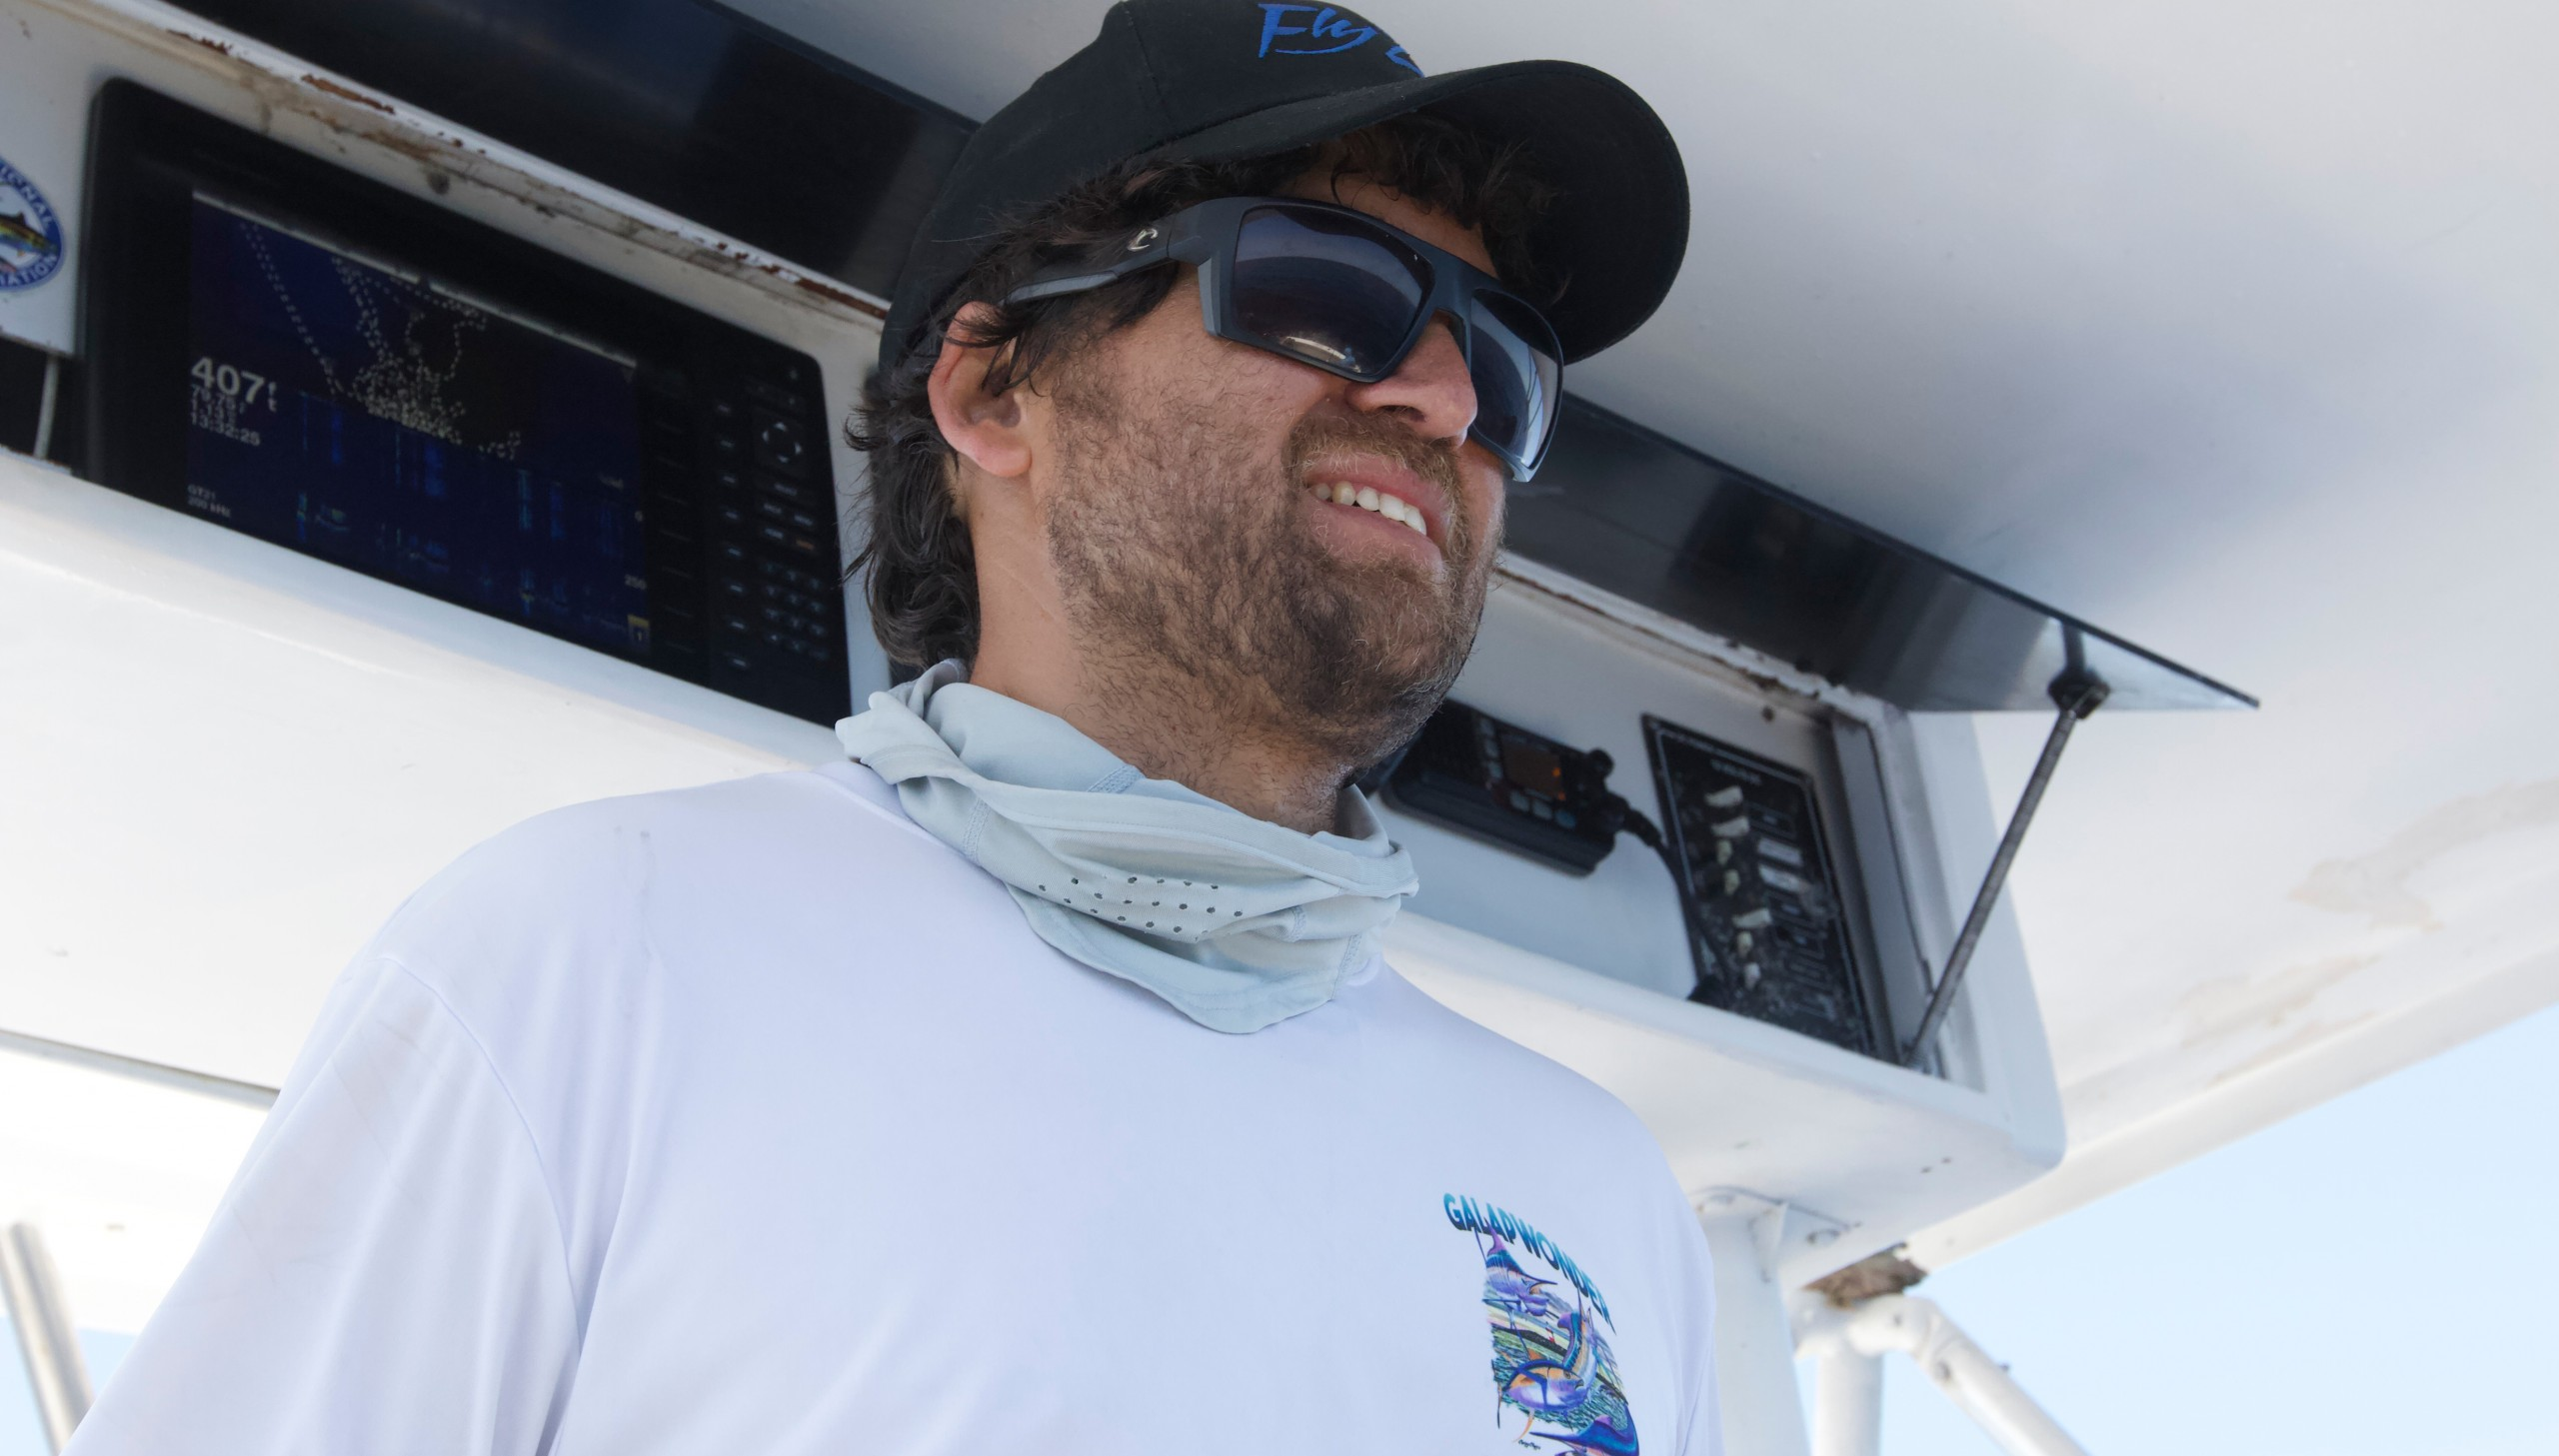 picture of Juan Kayser at the helm of the boat